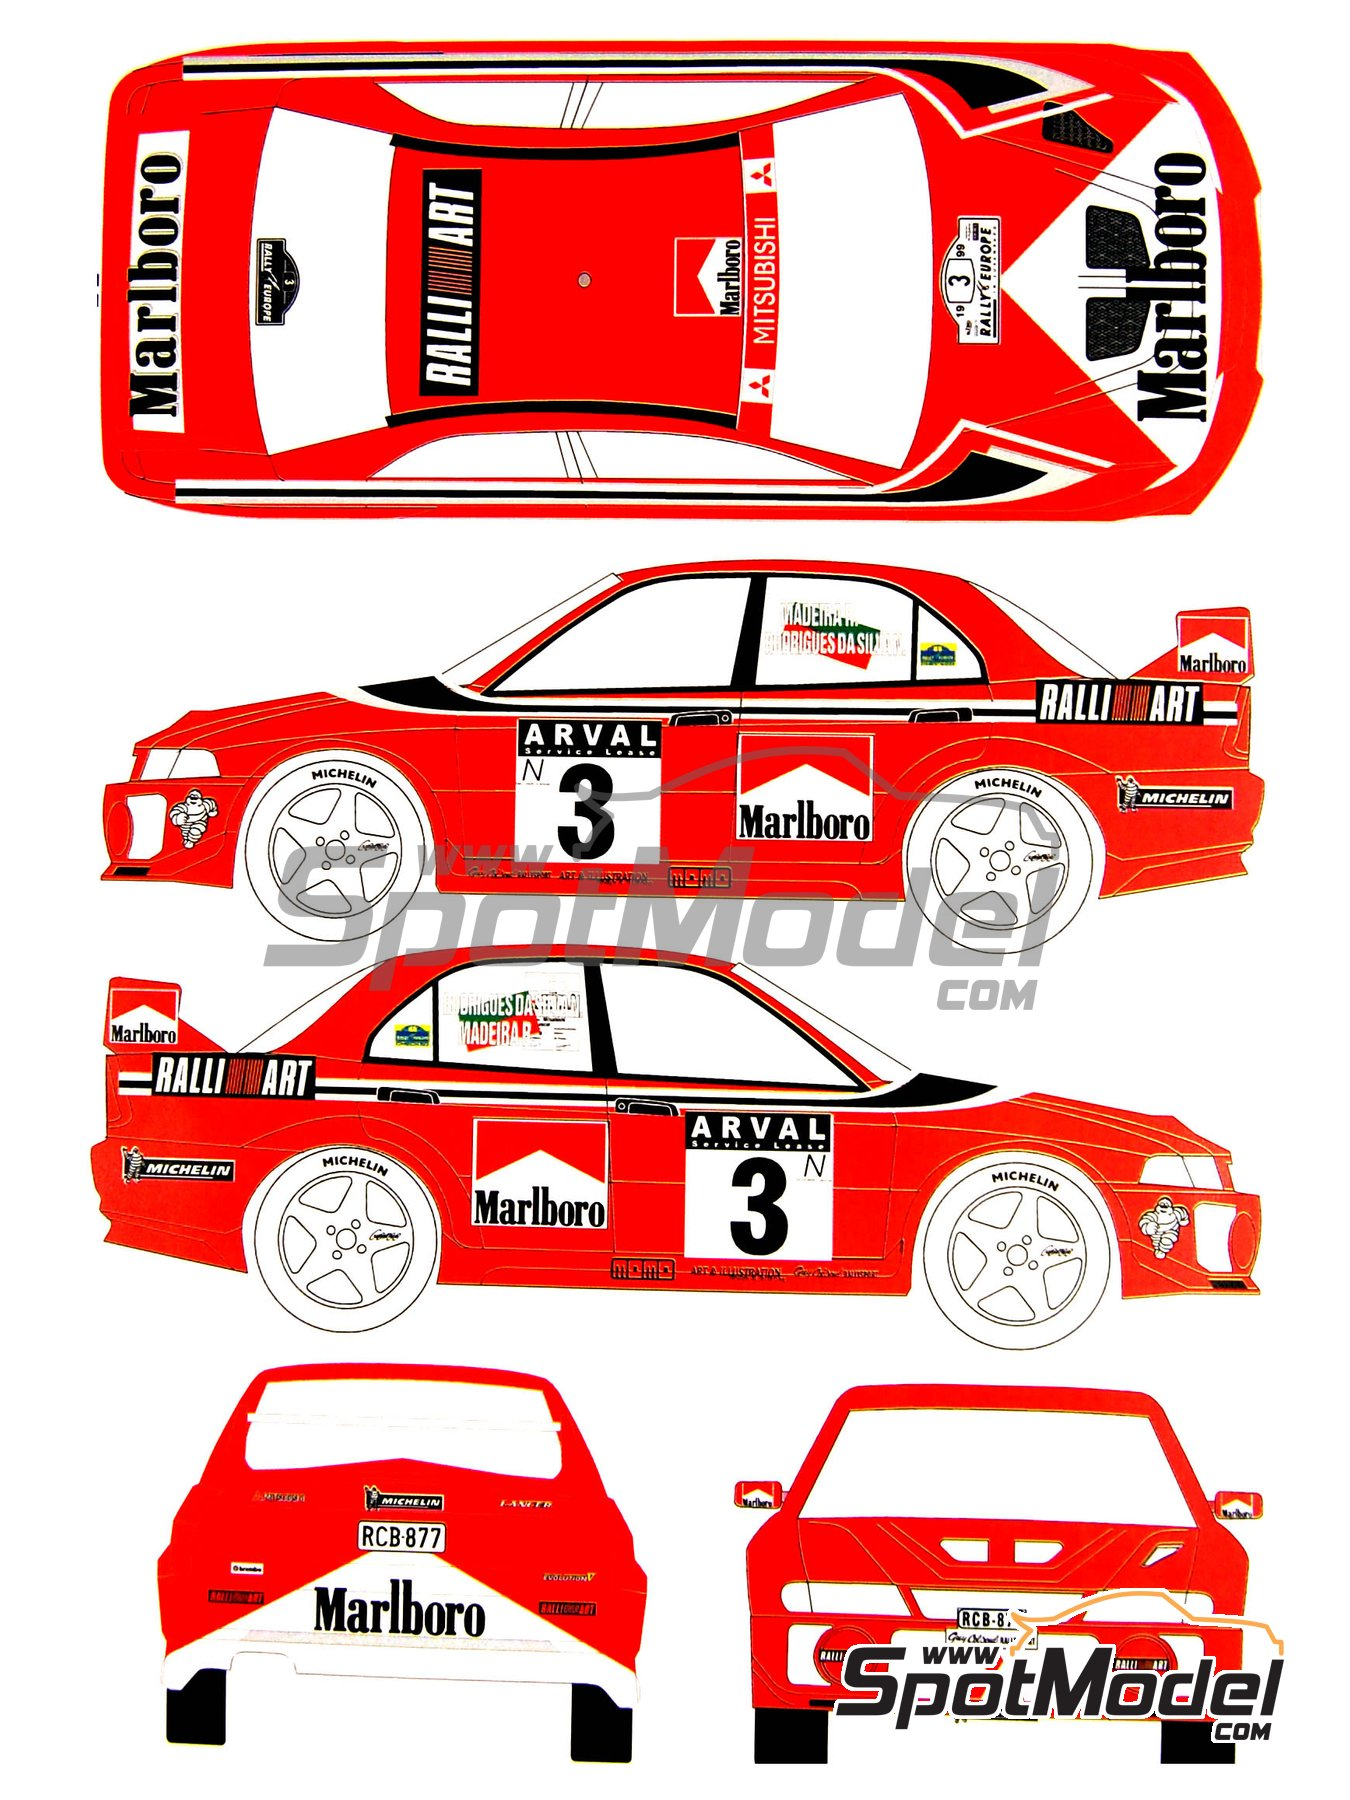 Mitsubishi Lancer Evo V Marlboro Ralli Art - Luxembourg rally 1999 | Marking / livery in 1/24 scale manufactured by Renaissance Models (ref.TK24-027) image